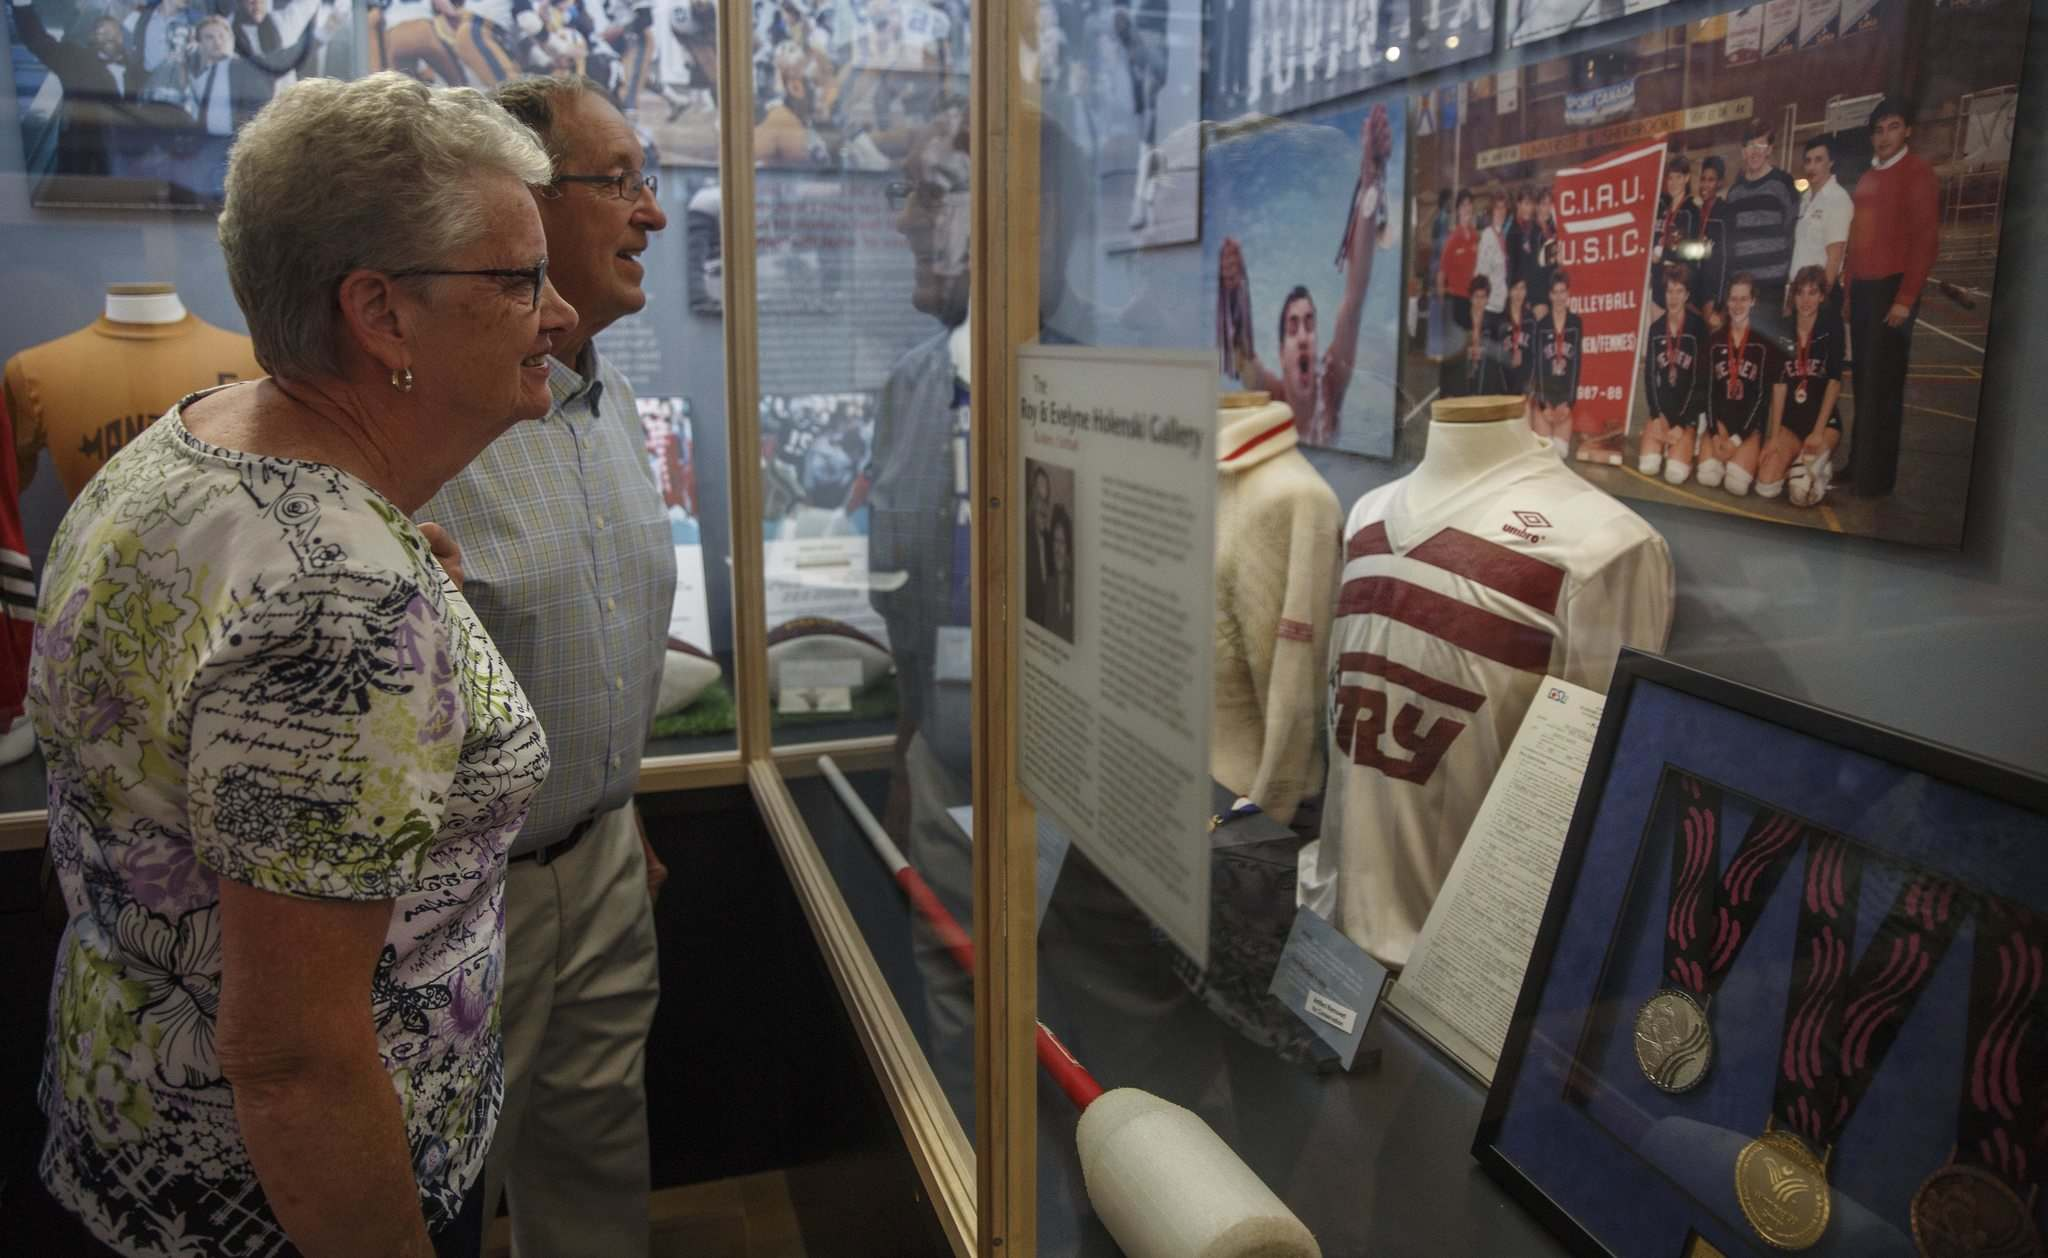 MIKE DEAL / WINNIPEG FREE PRESS</p><p>Erna Iwanoczko and her husband, Don, check out the new exhibition at the Manitoba Sports Hall of Fame showcasing 50 years of Canada Games history.</p>